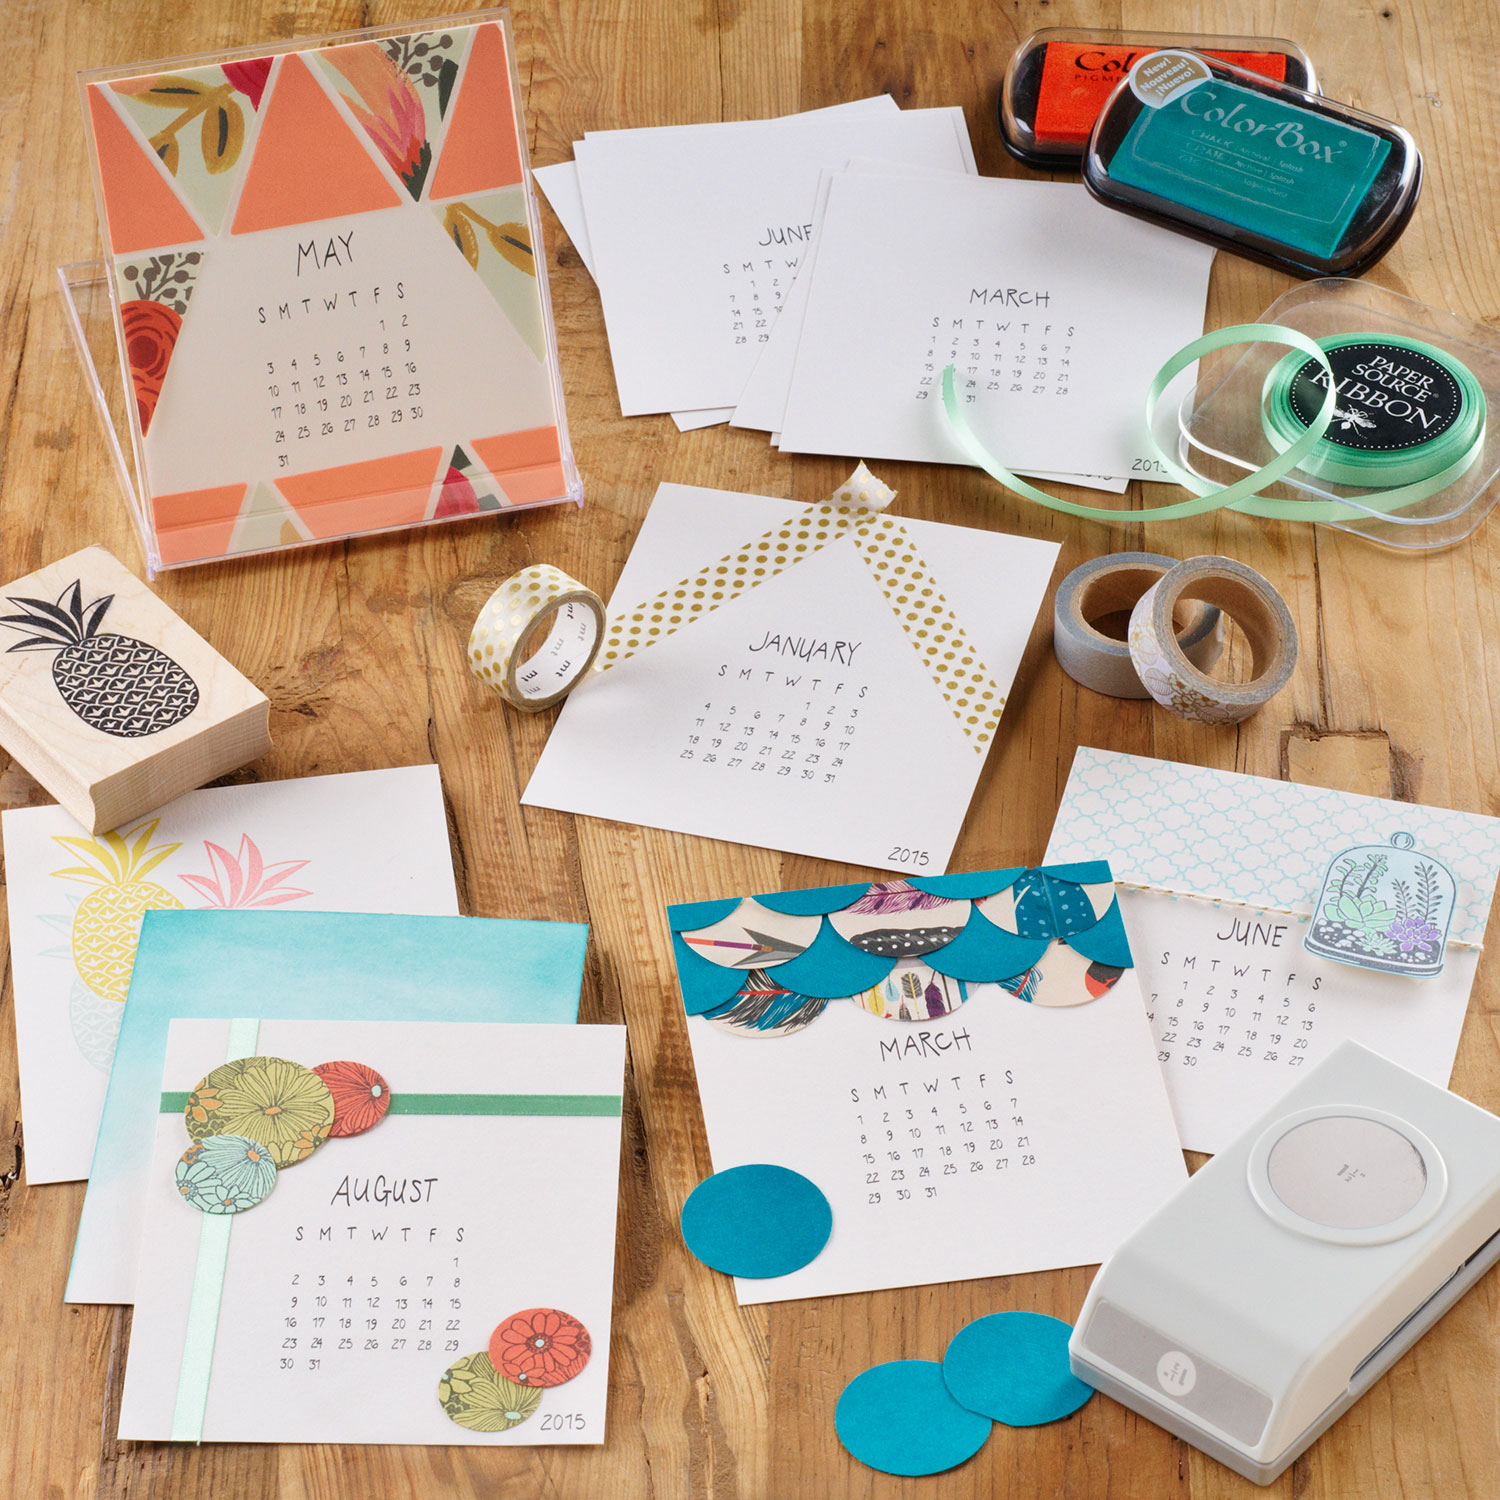 November Calendar Diy : Workshop diy calendar paper source